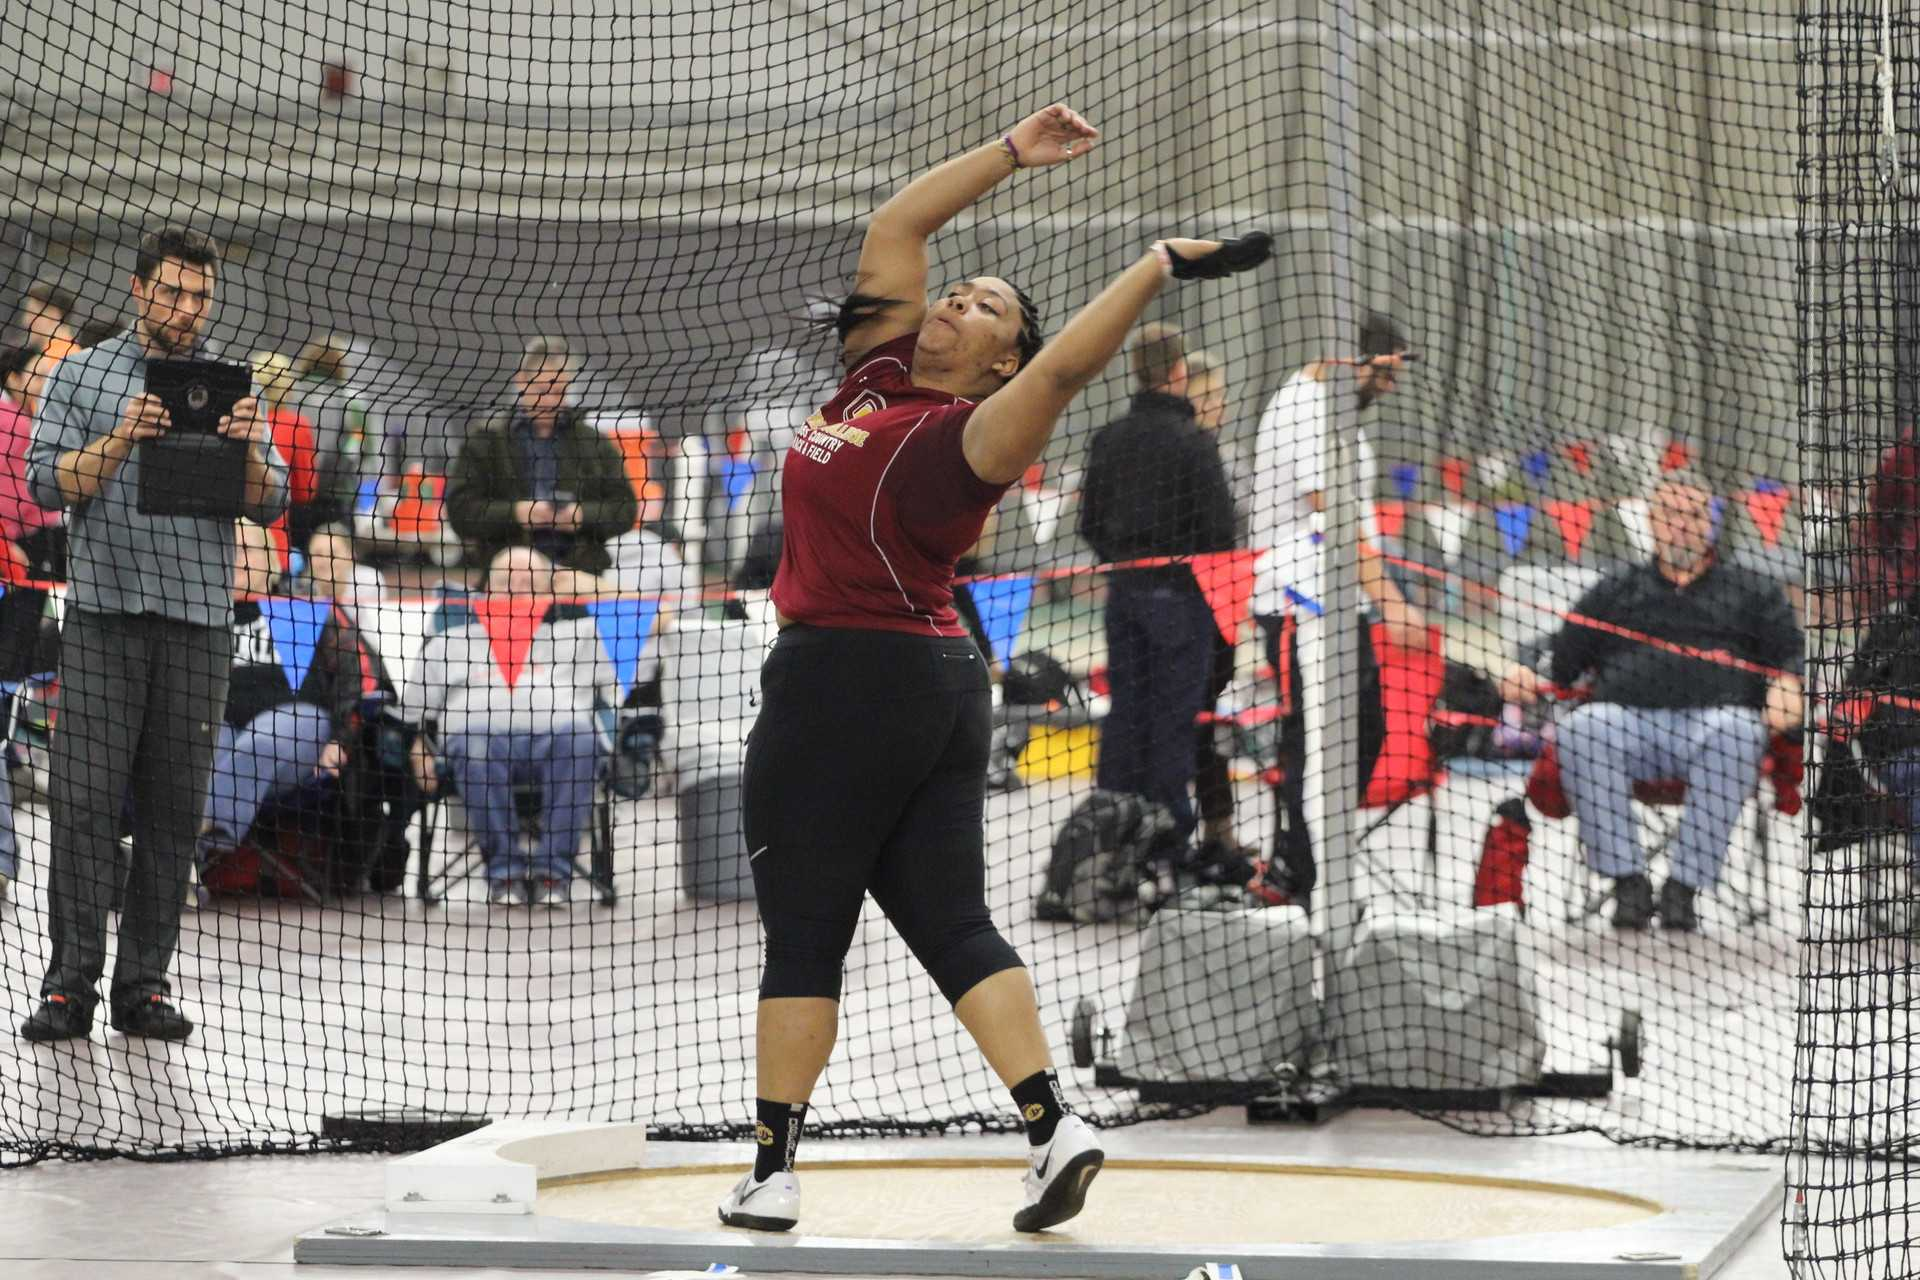 Junior Ana Richardson was named the NCAC Field Athlete of the Week after winning the women's weight throw in the All-Ohio Championships last Saturday.